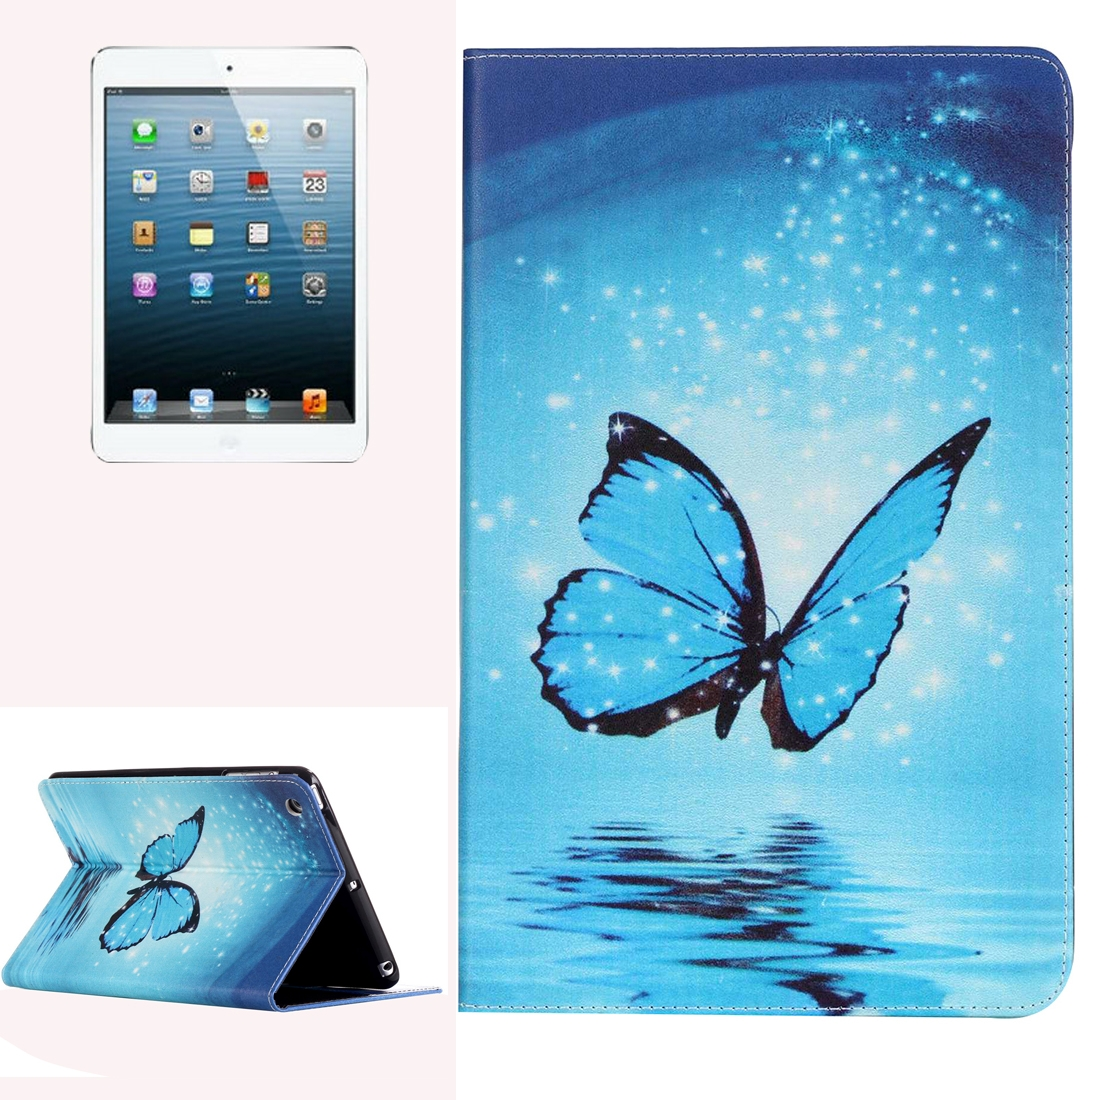 iPad Mini Cover Fits iPad 1/2/3 Painted Blue Butterfly Leather Case with Stand